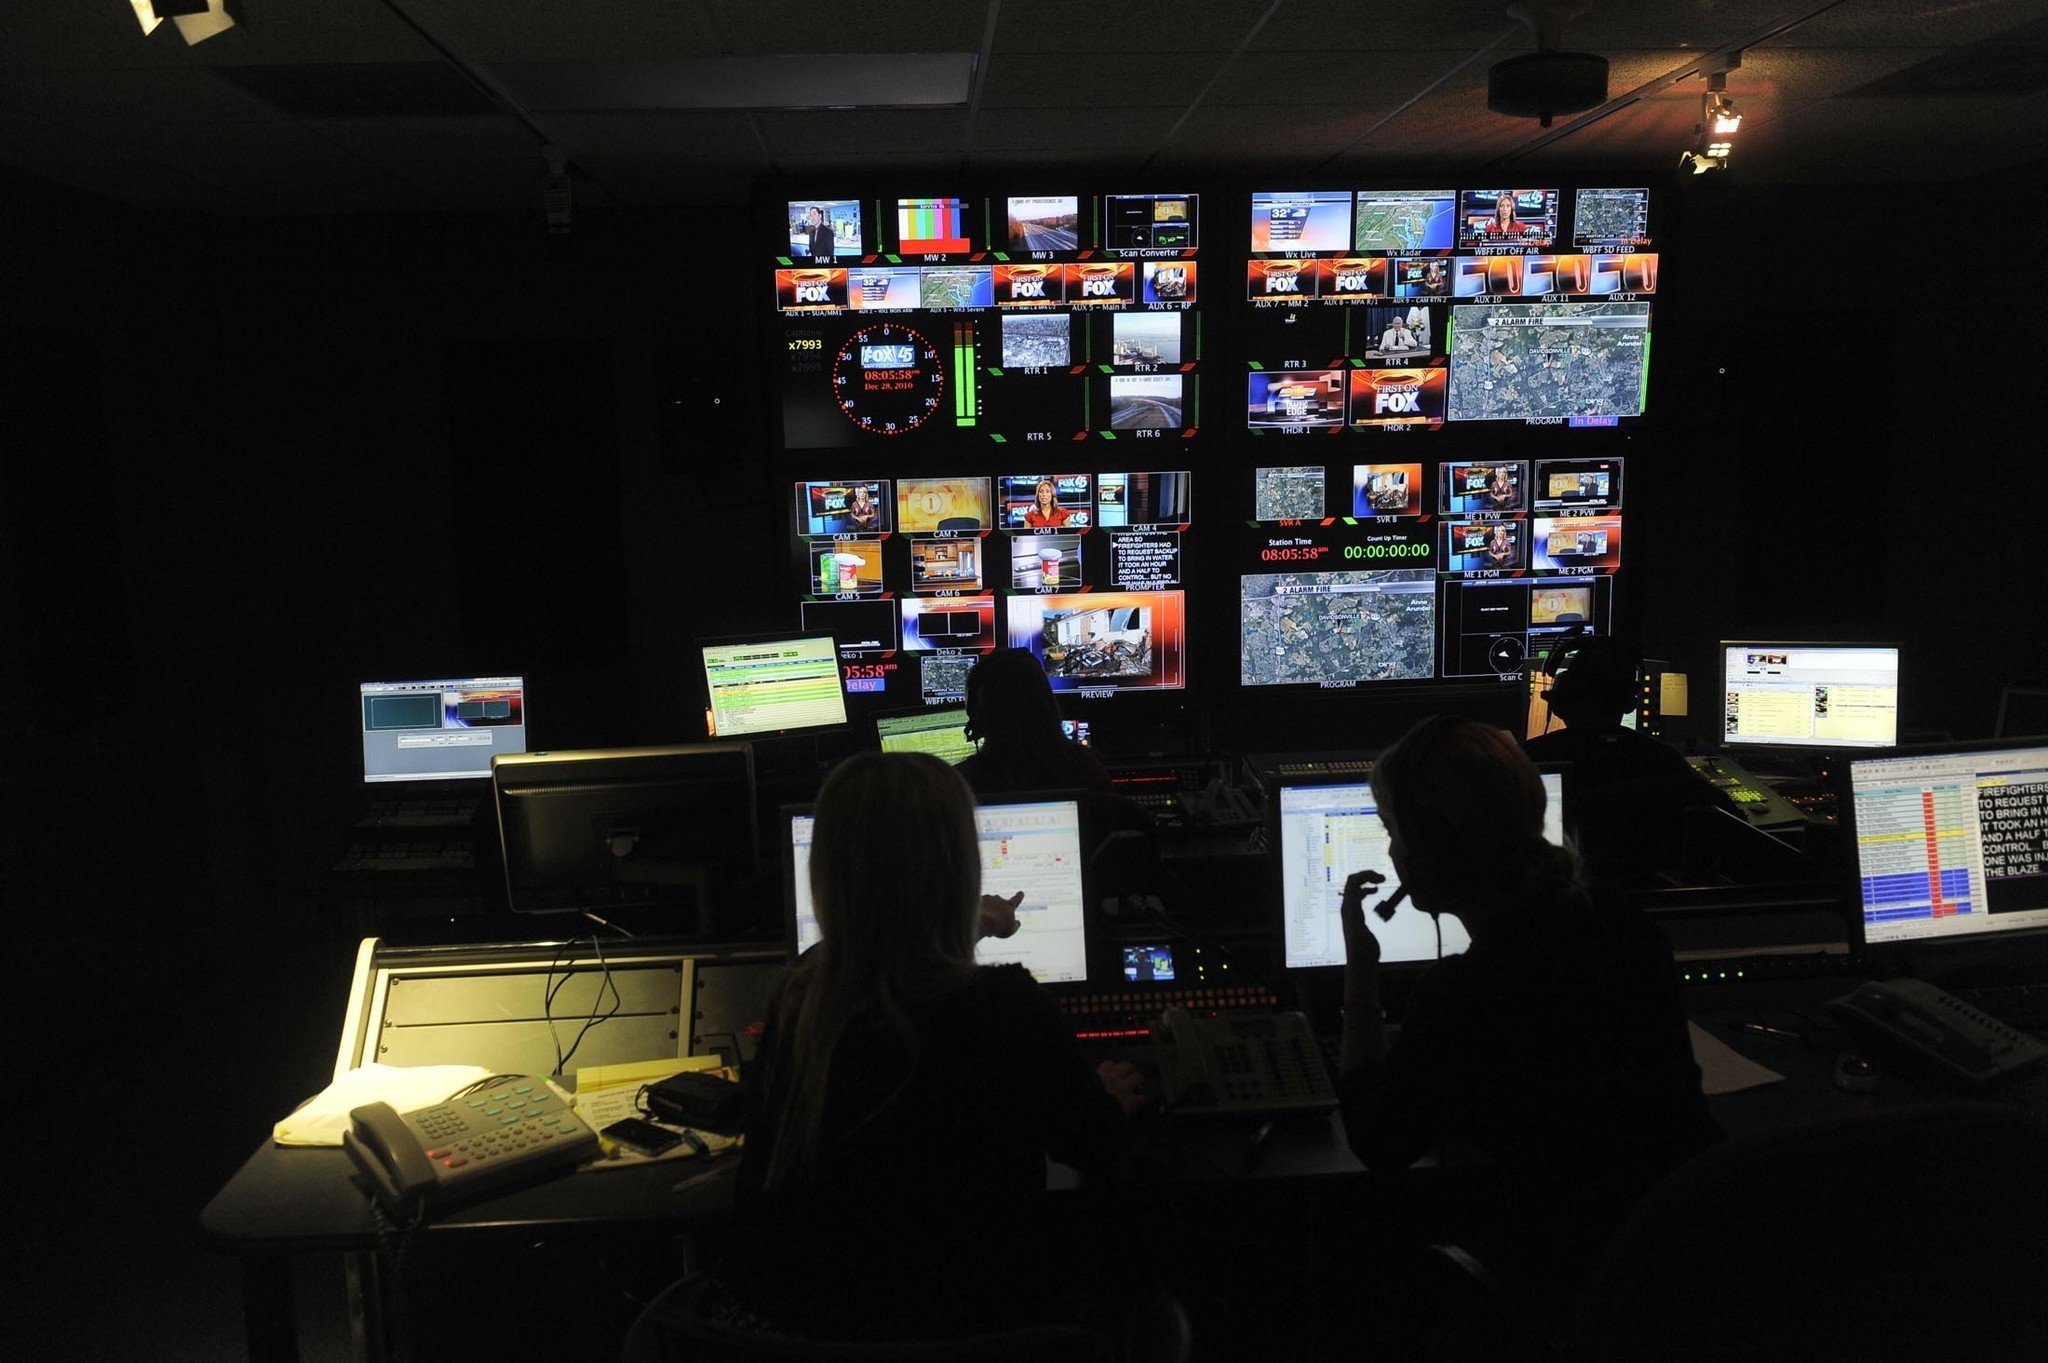 Wbff Tv To Launch 4 P M Newscast Digital Weather Channel Baltimore Sun